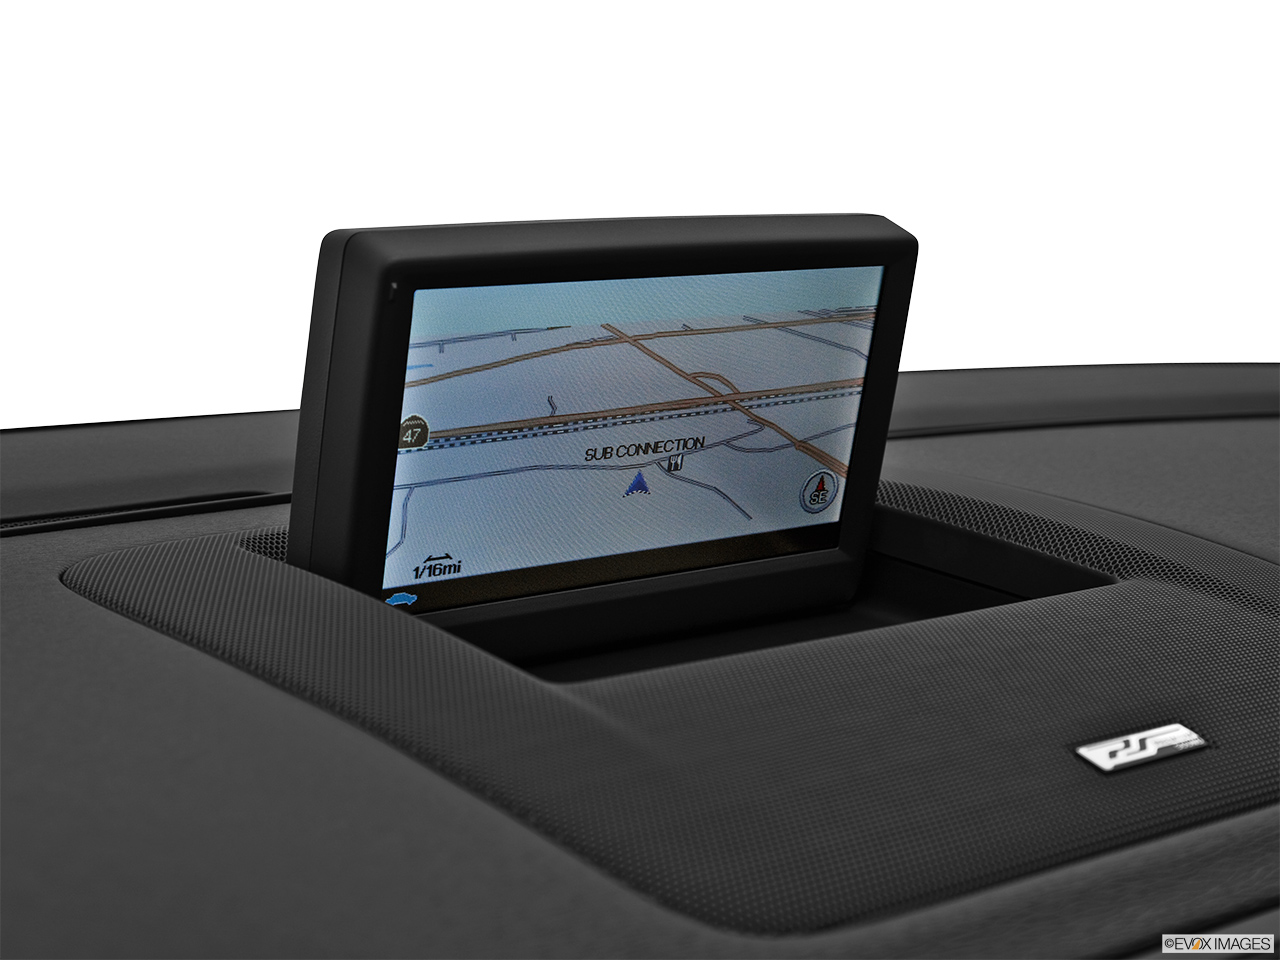 2013 Volvo C70 T5 Platinum Driver position view of navigation system.